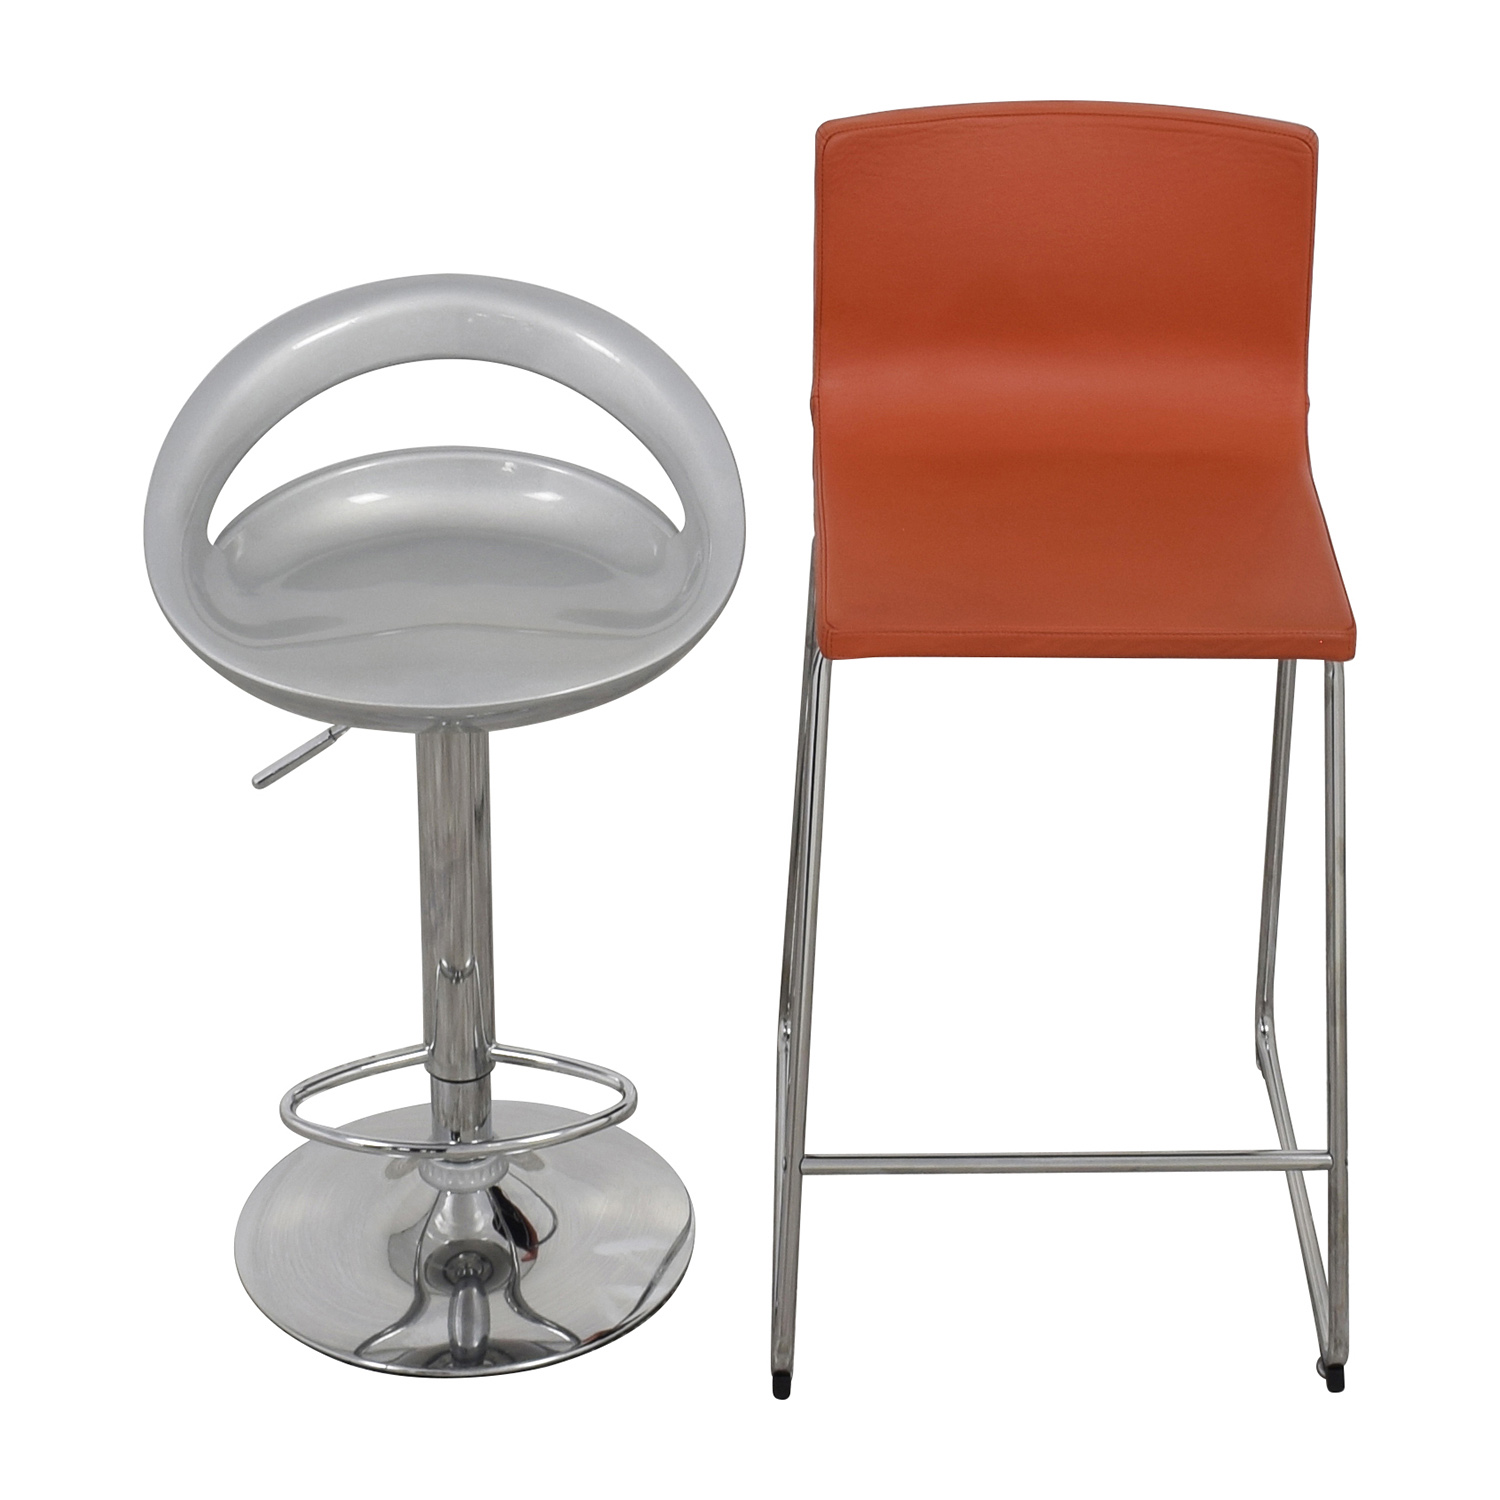 100 Orange Chair Shift Foldable Dining Chair  : pair of modern orange and silver bar stools second hand from 45.76.23.192 size 1500 x 1500 jpeg 274kB